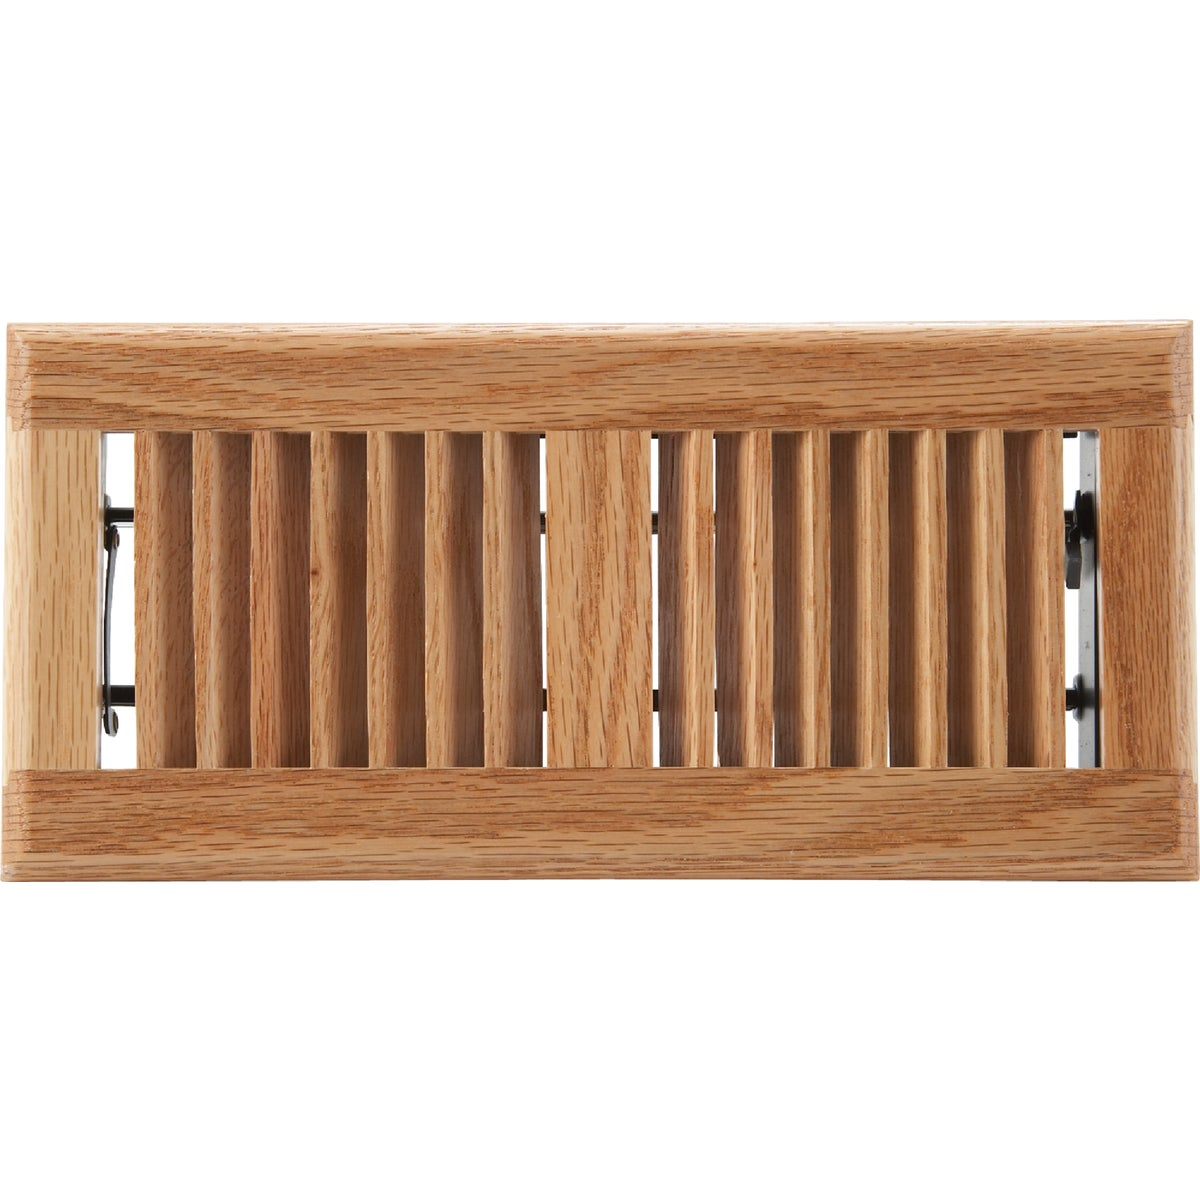 4X10 LT OAK FLR REGISTER - WF0410L0 by Do it Best